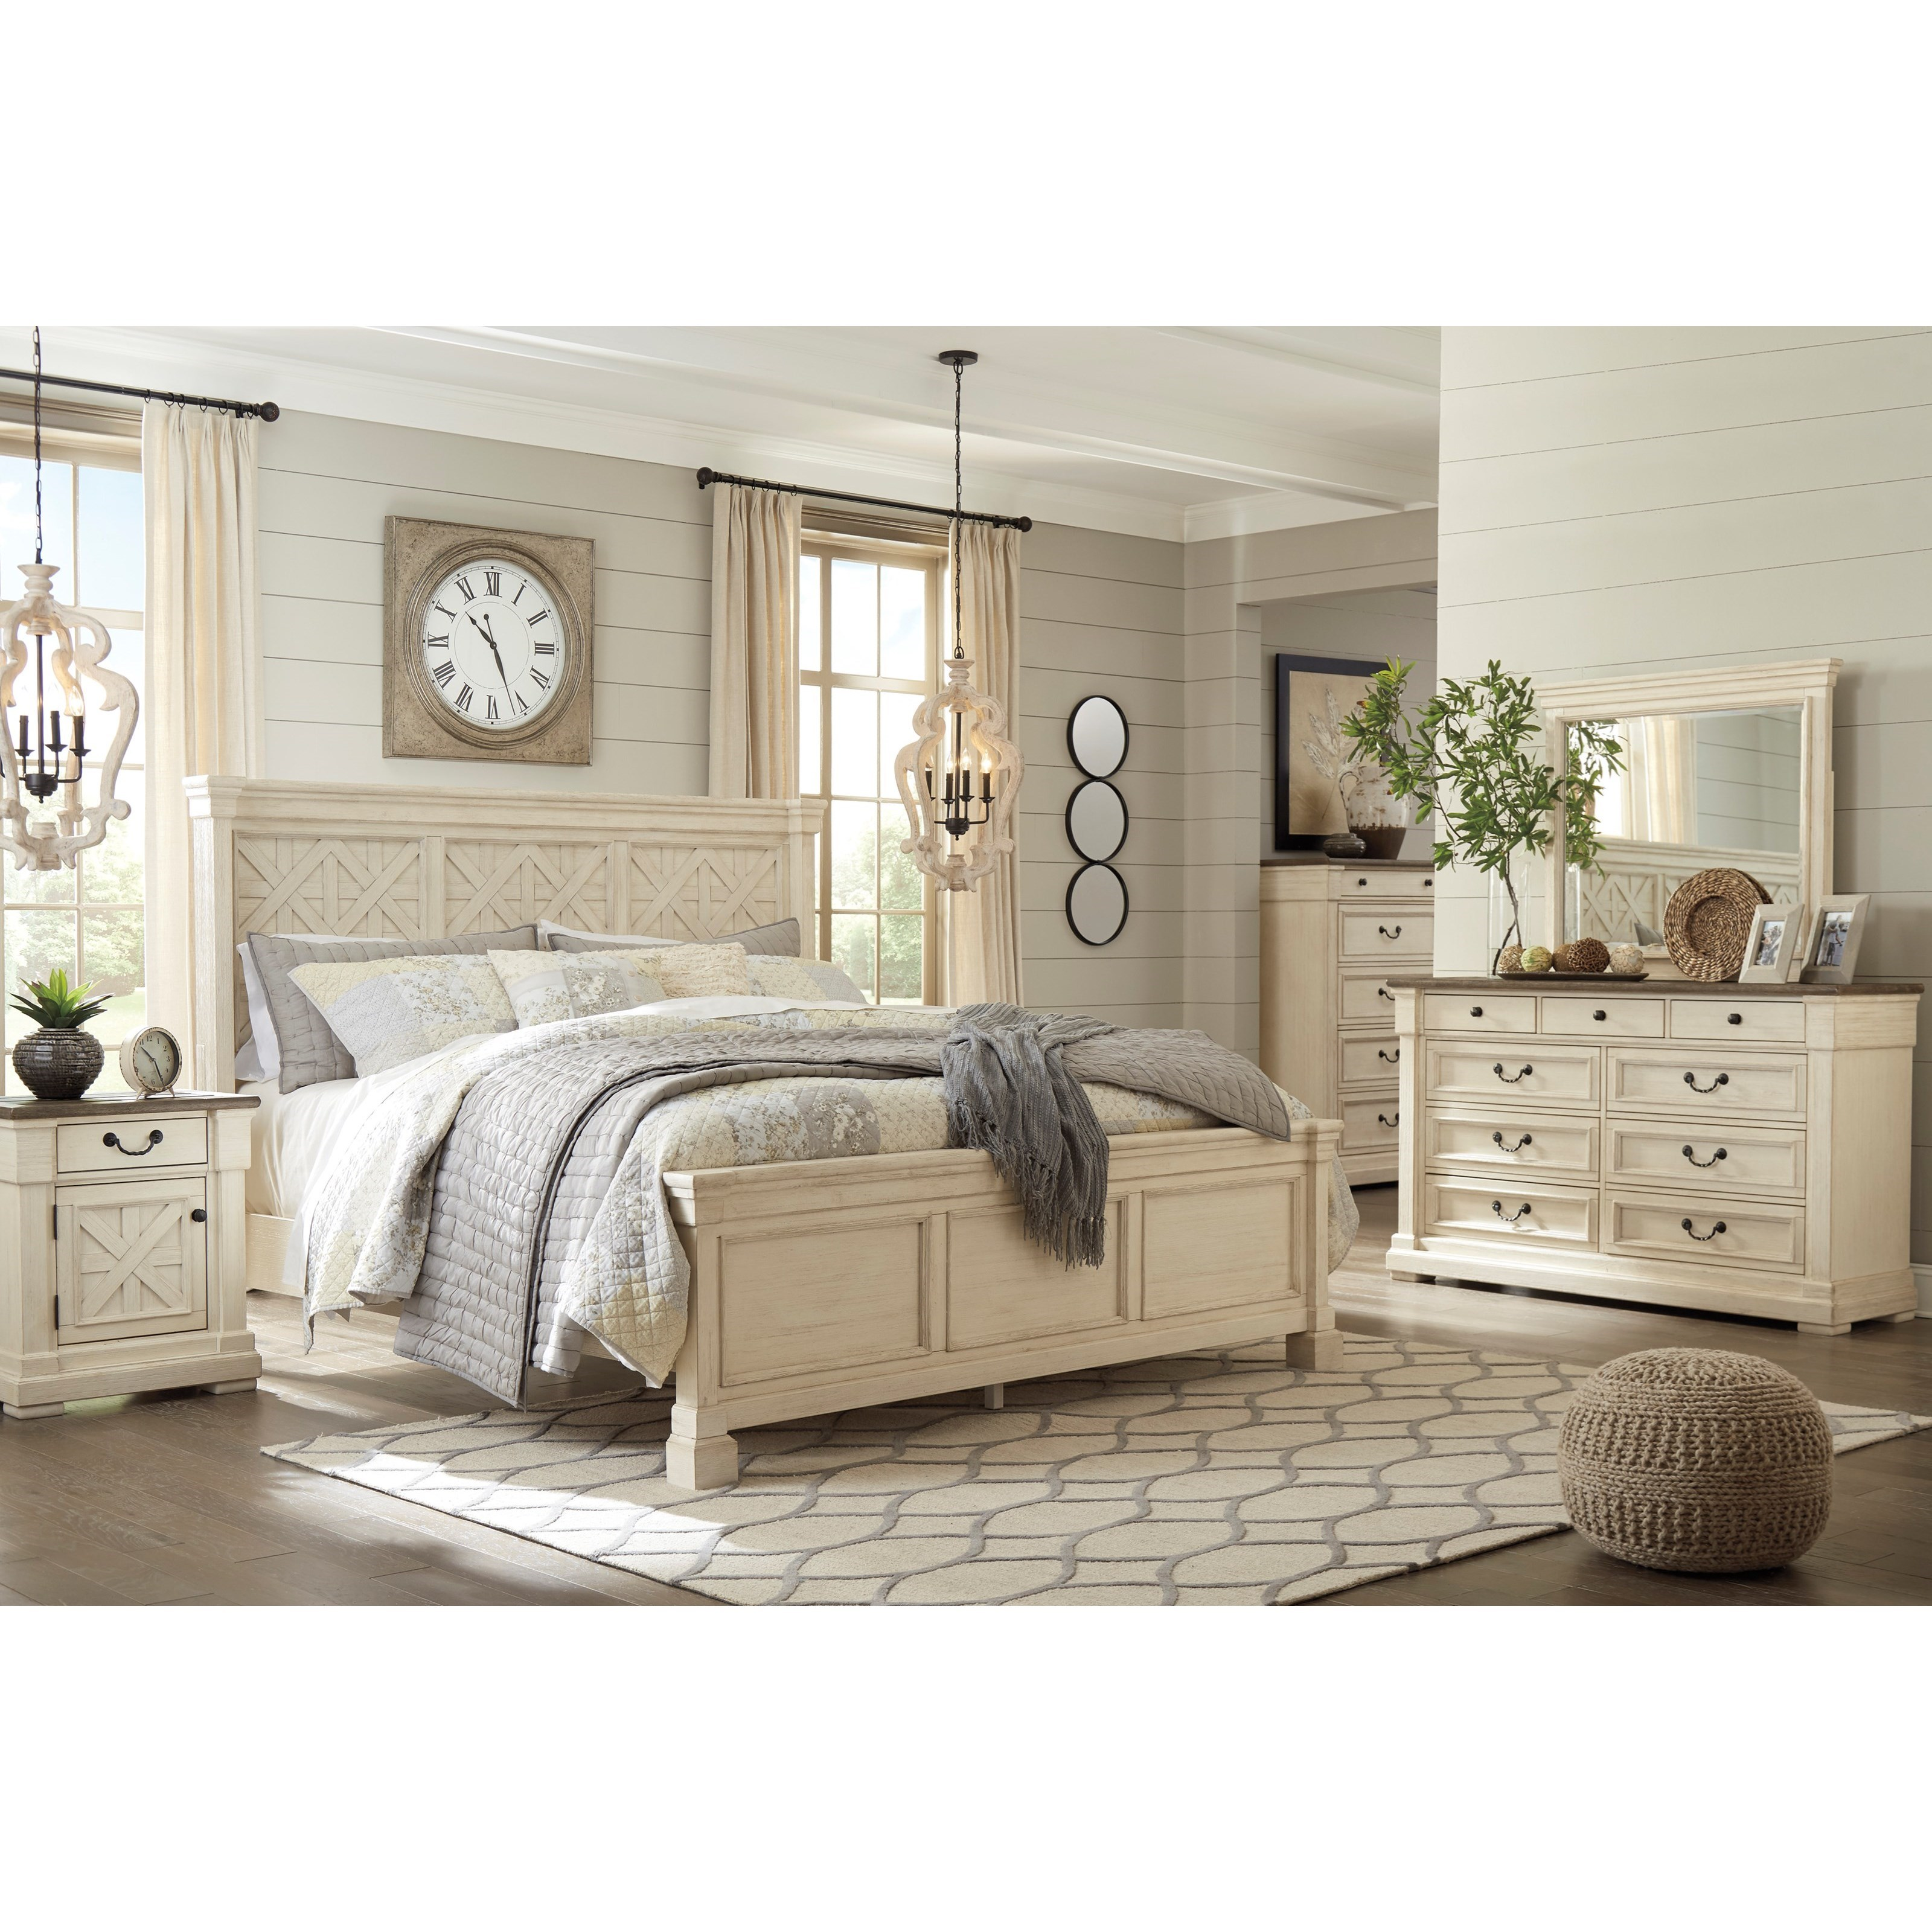 California king bedroom group by signature design by for Bedroom groups